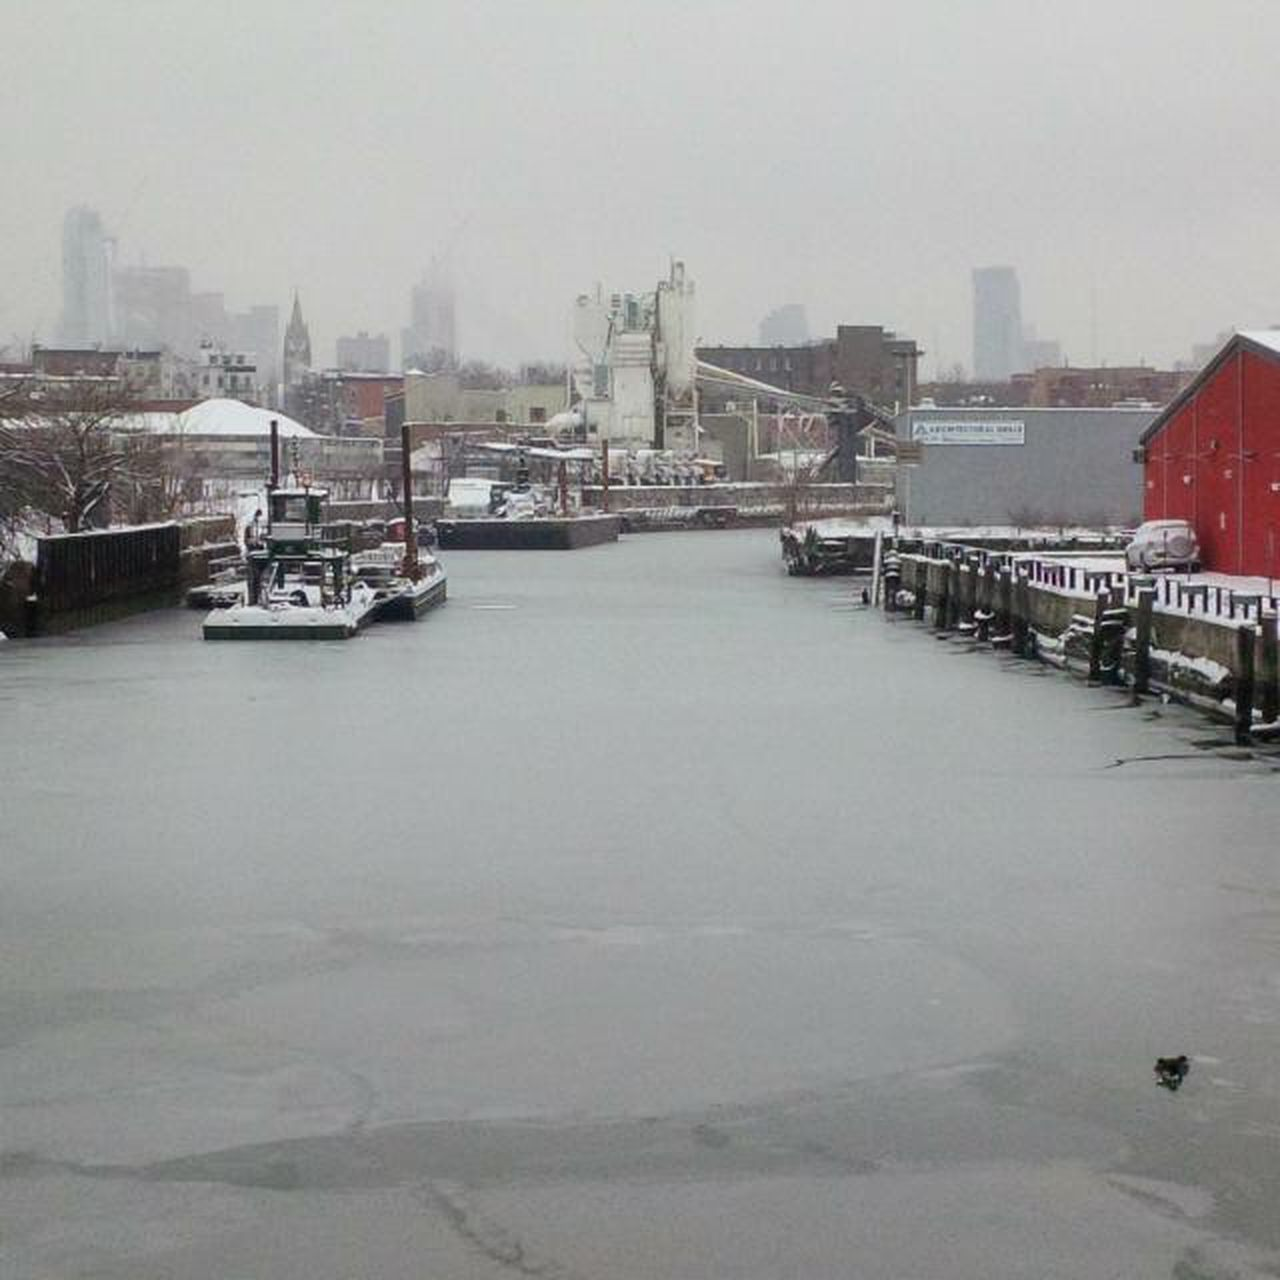 GowanusCanal Brooklyn Frozen Whiteout Gowanus Canal Winterinmarch NYC Storms TriedToWork BKNY Skyline Hidden Industrial